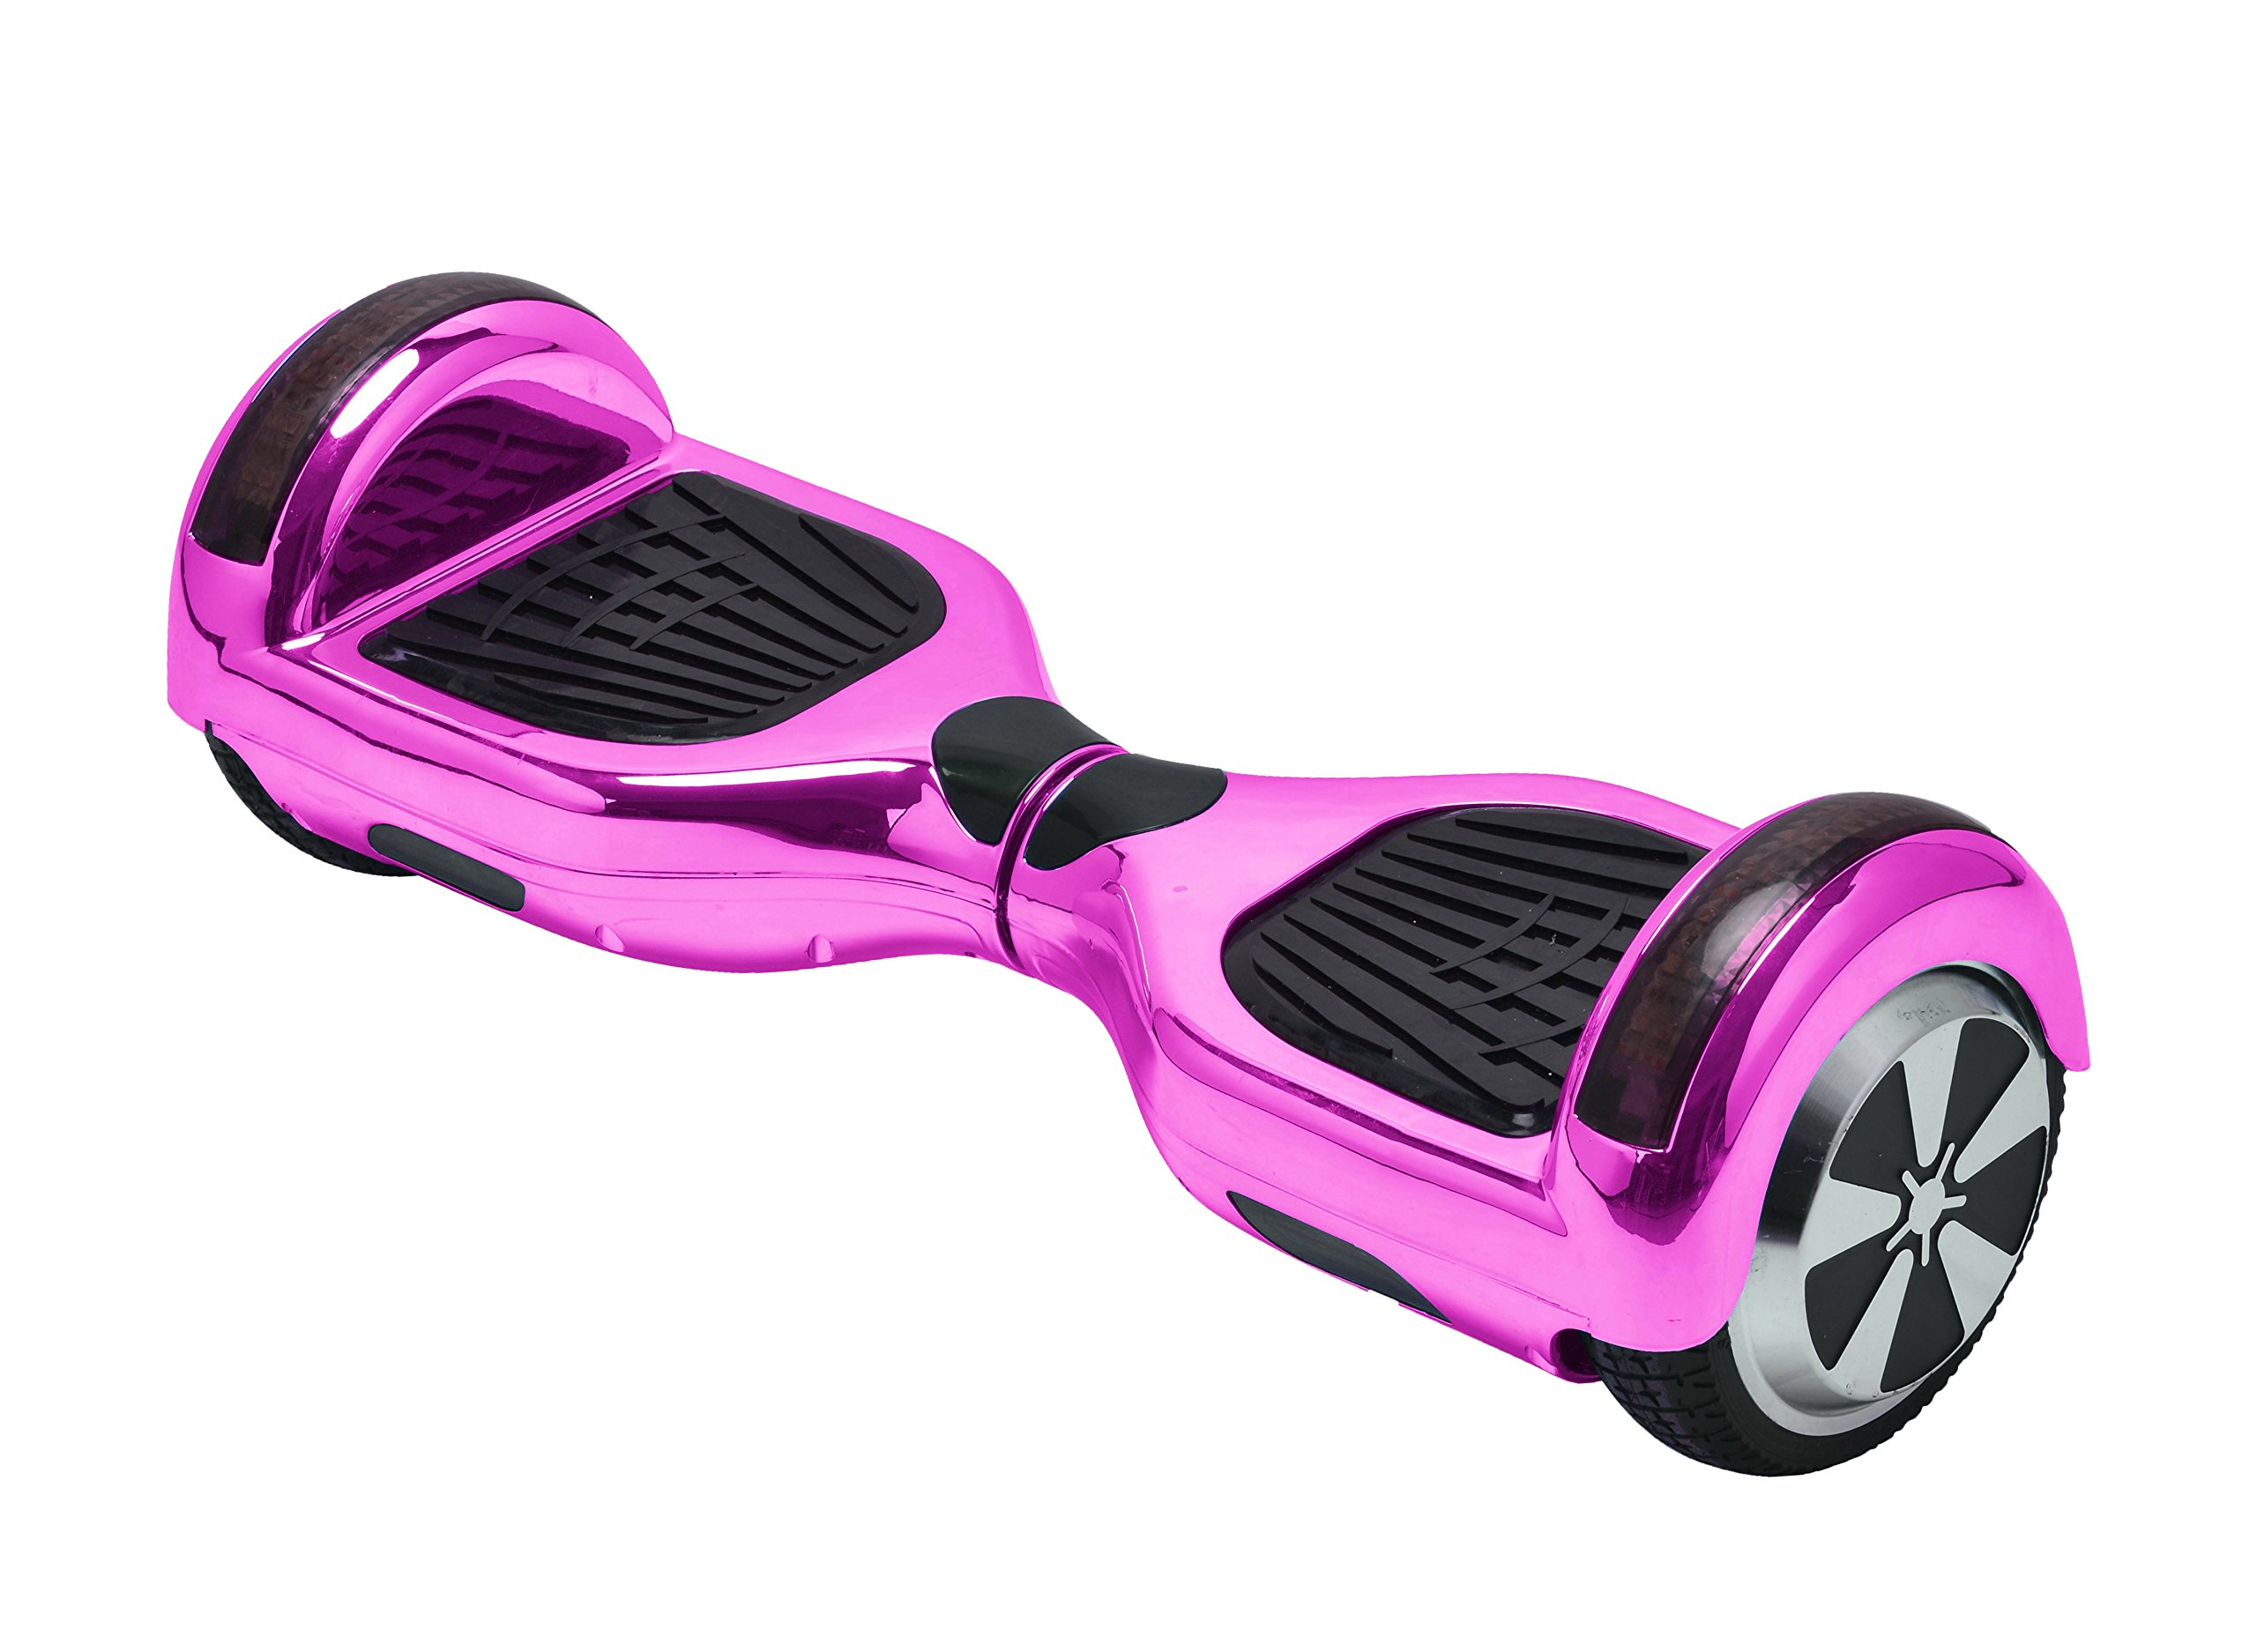 UL2272 Certified Hoverboard with Bluetooth Speaker and LED Lights Smart Self Balancing Scooter Personal Adult Transporter- Chrome Pink by Self Balance Scooter